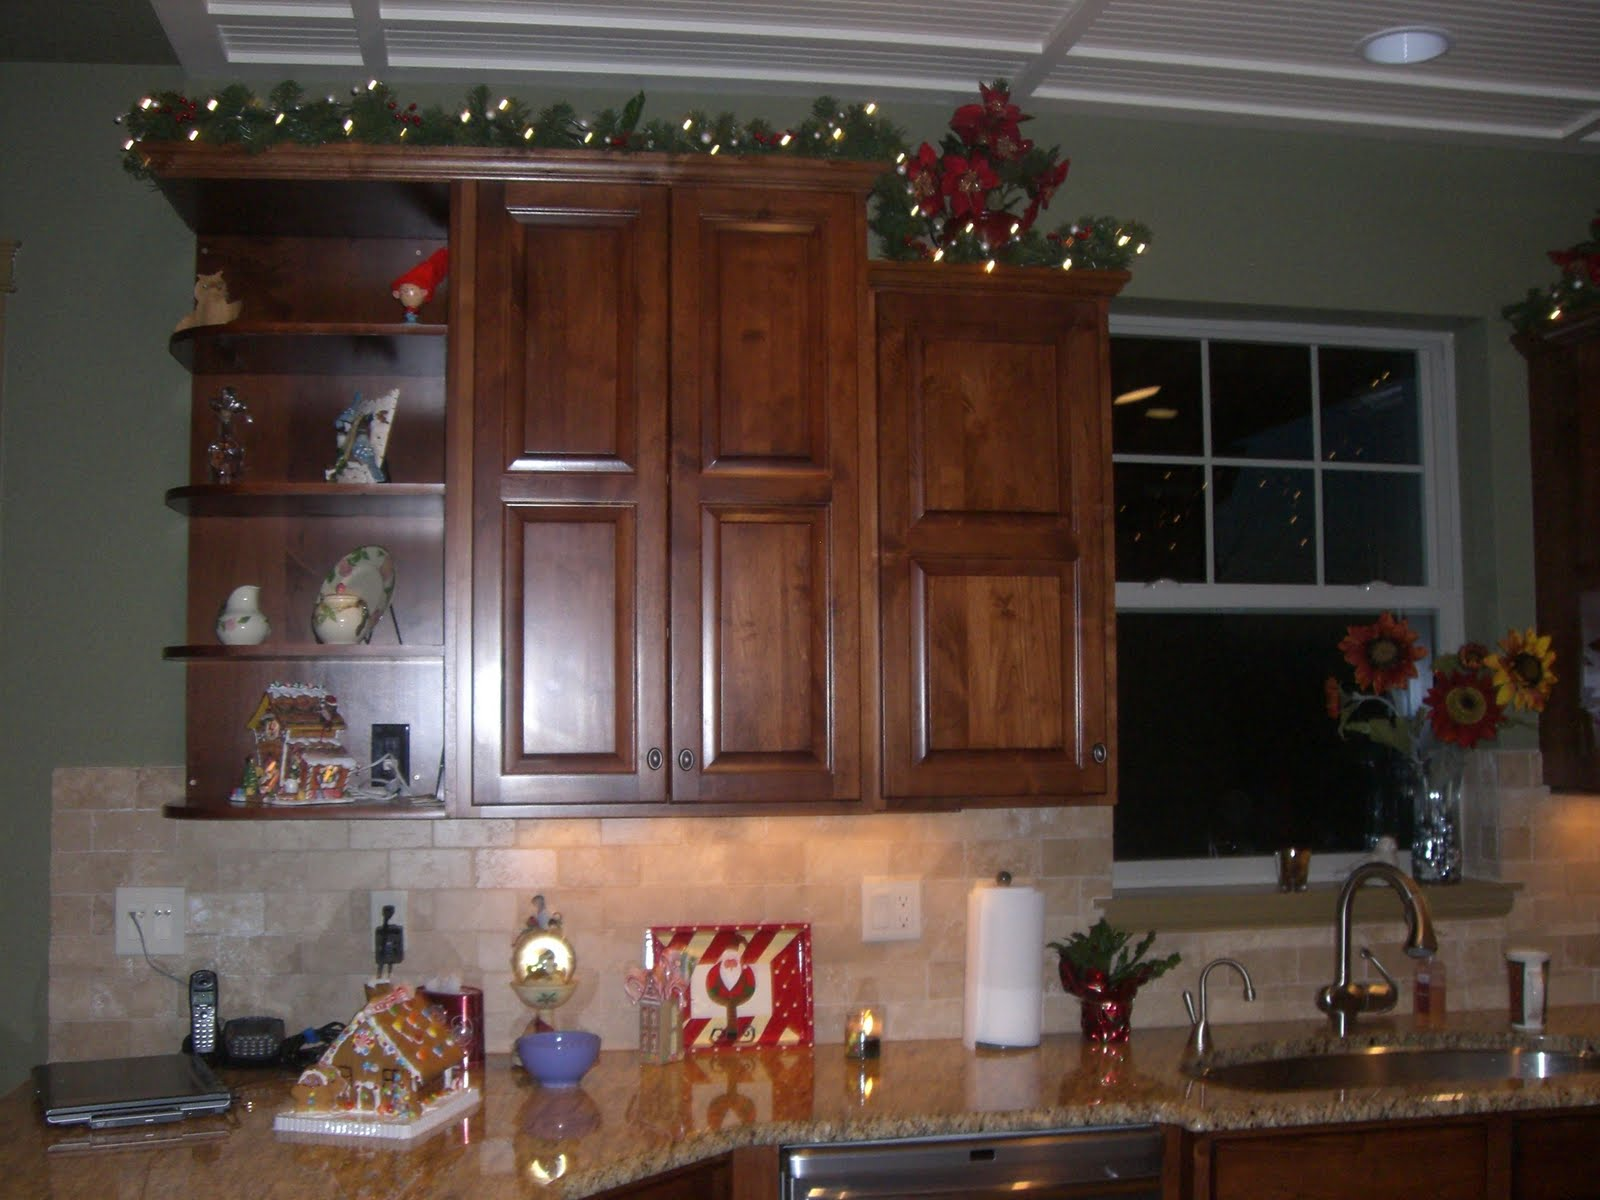 Decorating Ideas > Decorating Top Of Kitchen Cabinets For Christmas  Best  ~ 044407_Christmas Decorating Ideas Above Kitchen Cabinets